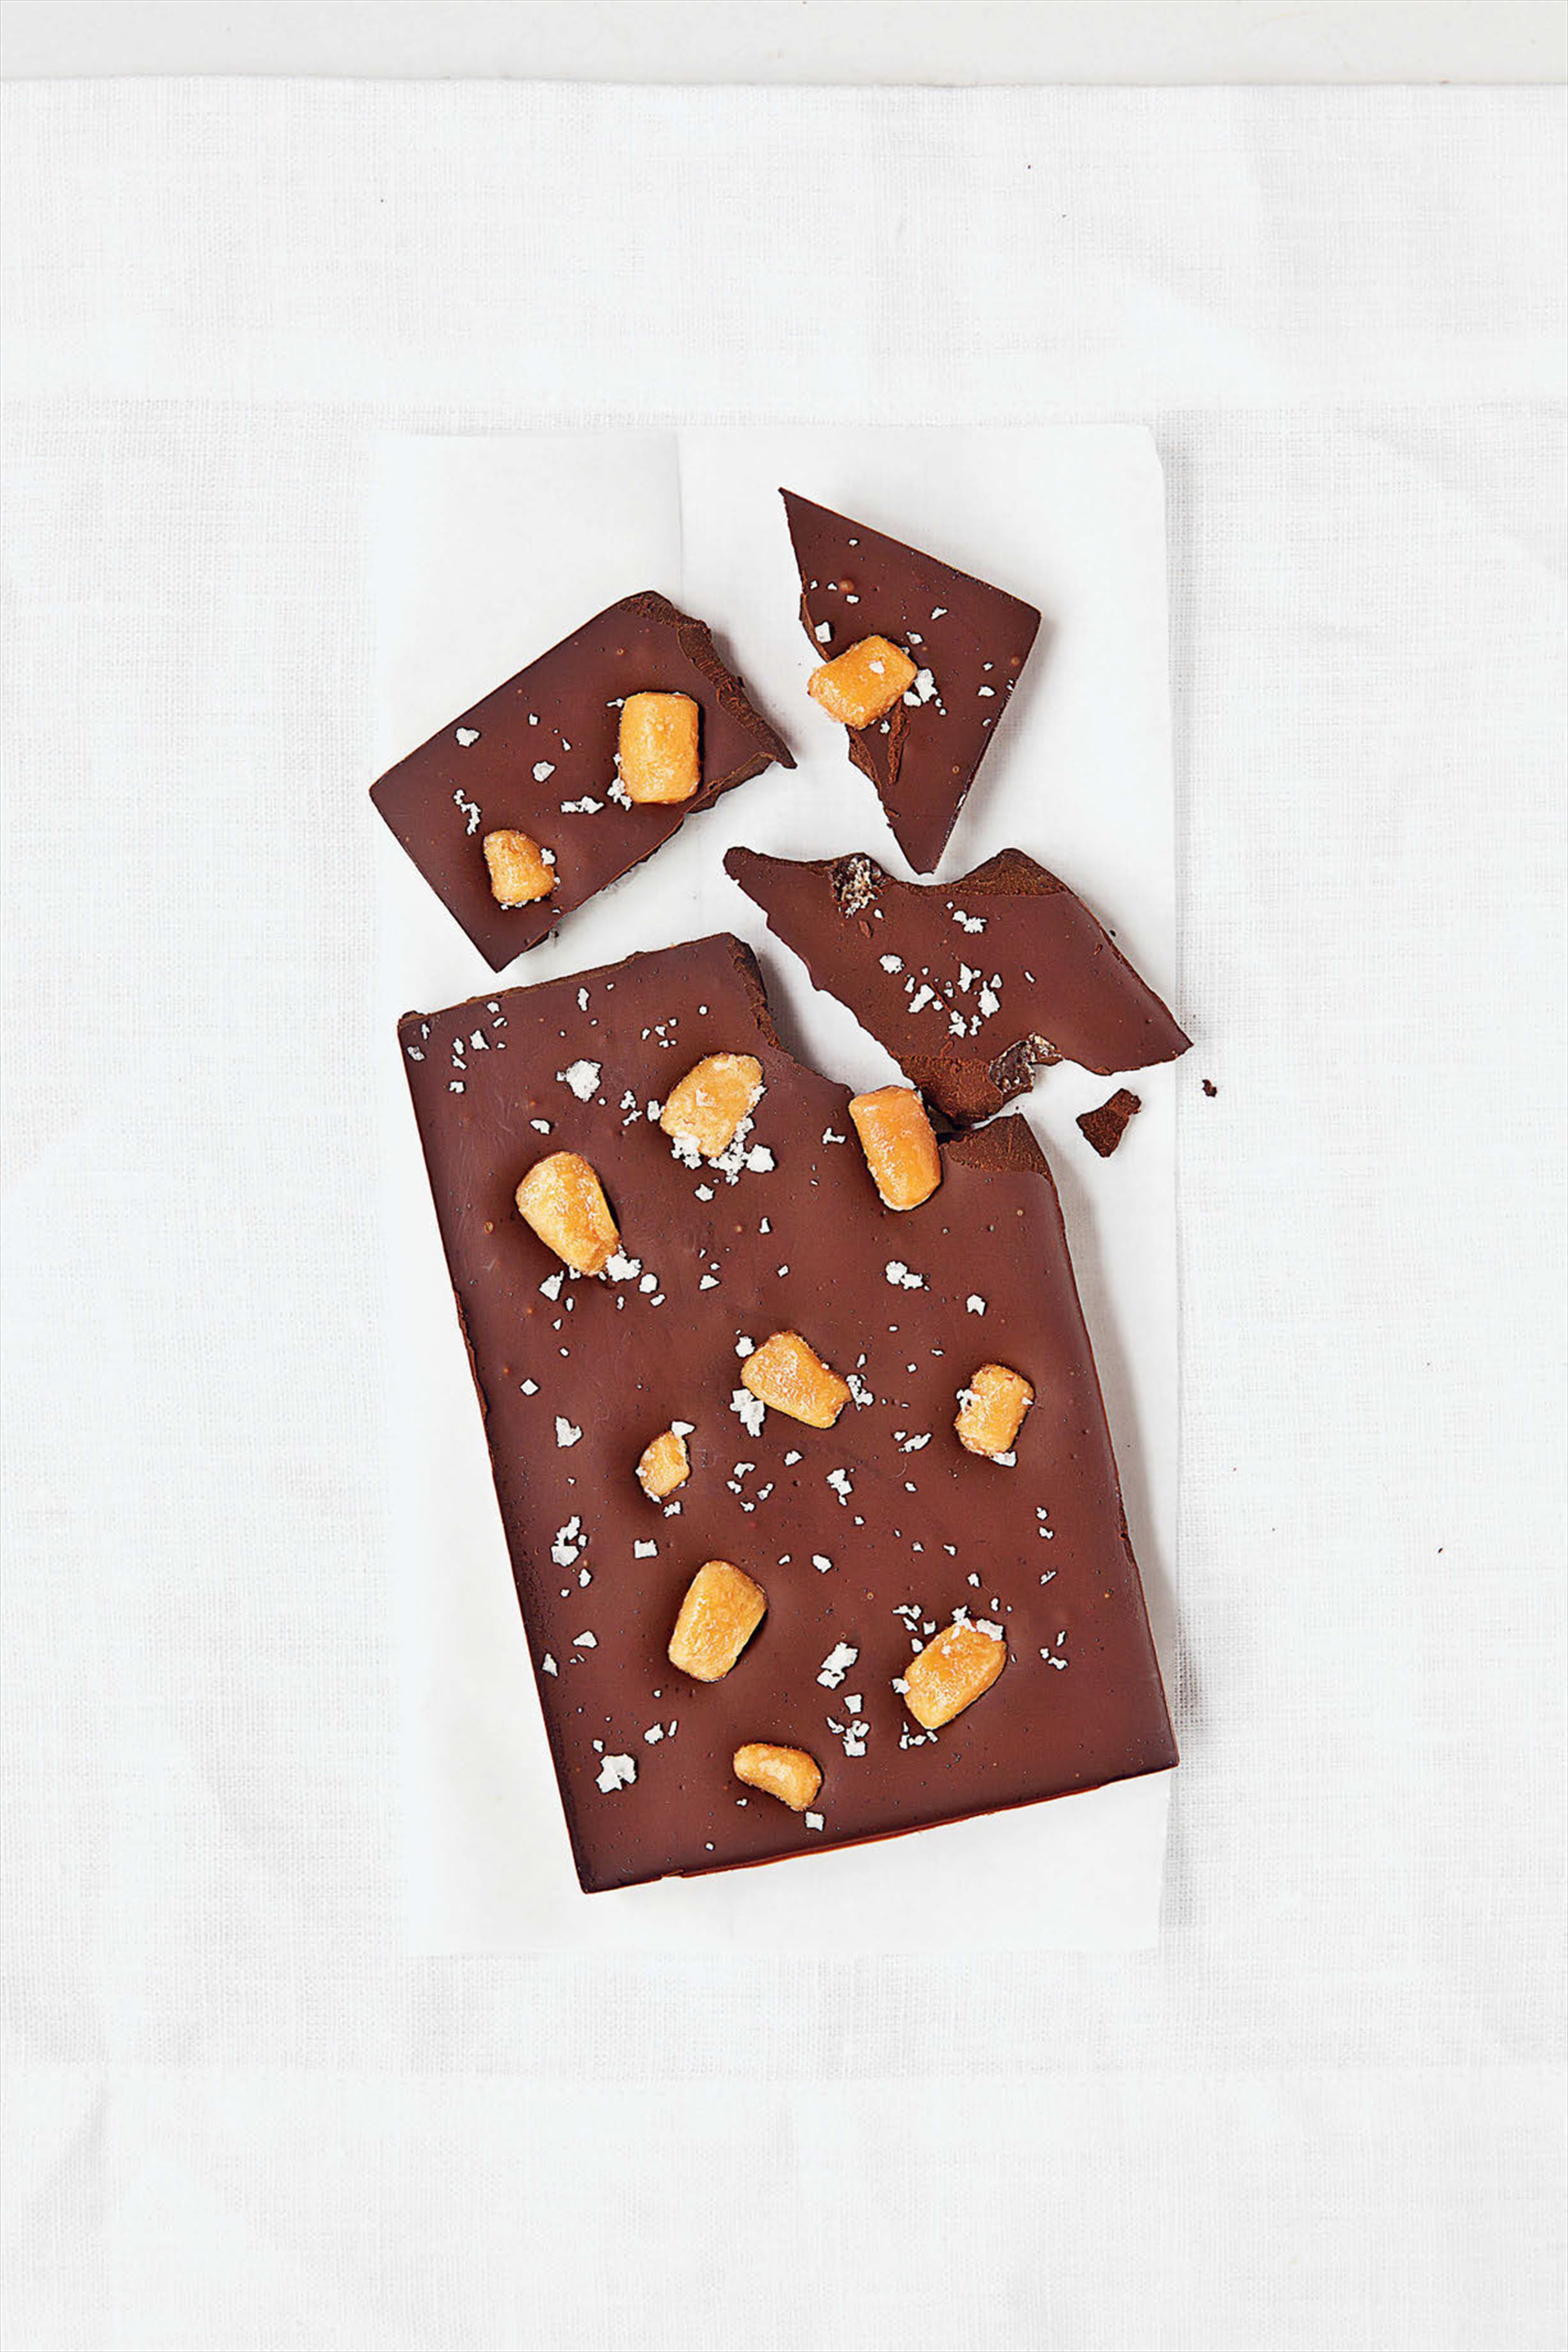 Sea salt and caramel chocolate slab